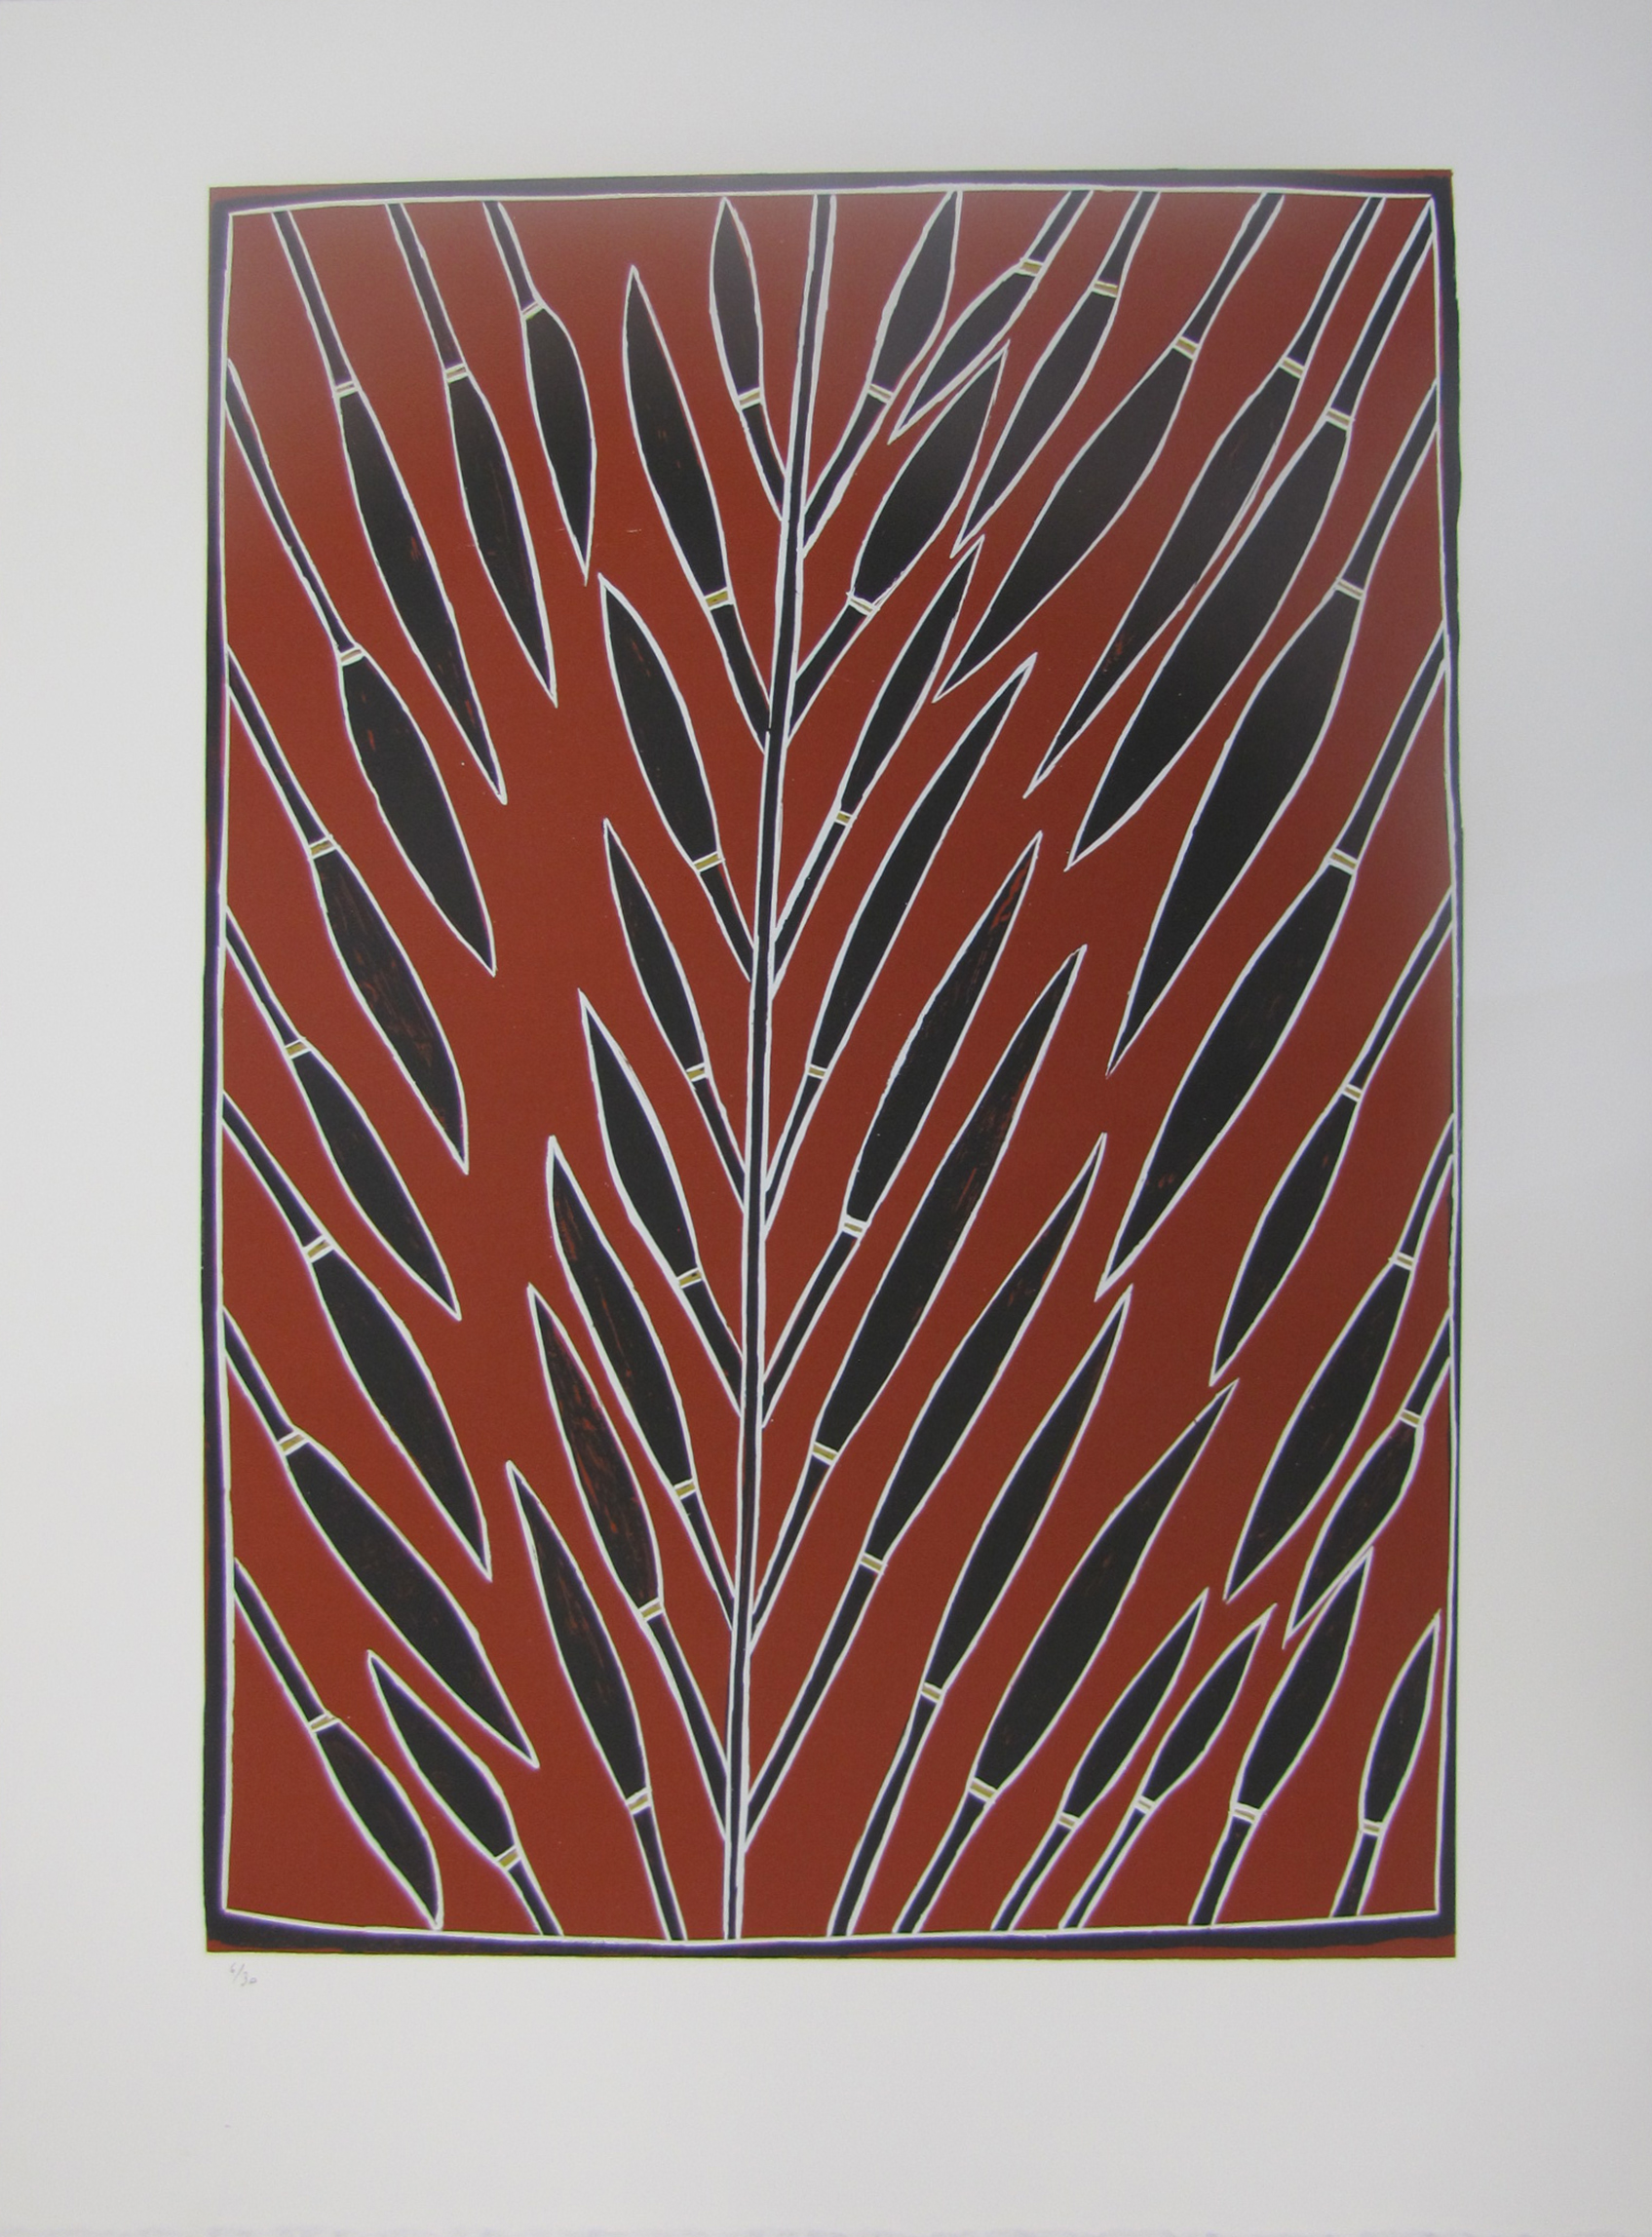 Peter Mingululu, Stringy Bark Tree. 2016  Silkscreen. Ed 5 /30 59.5 x 42 cm $350 (unframed)  $550 (framed)   Editions 6/30, 7/30 & 8/30 (unframed) also available